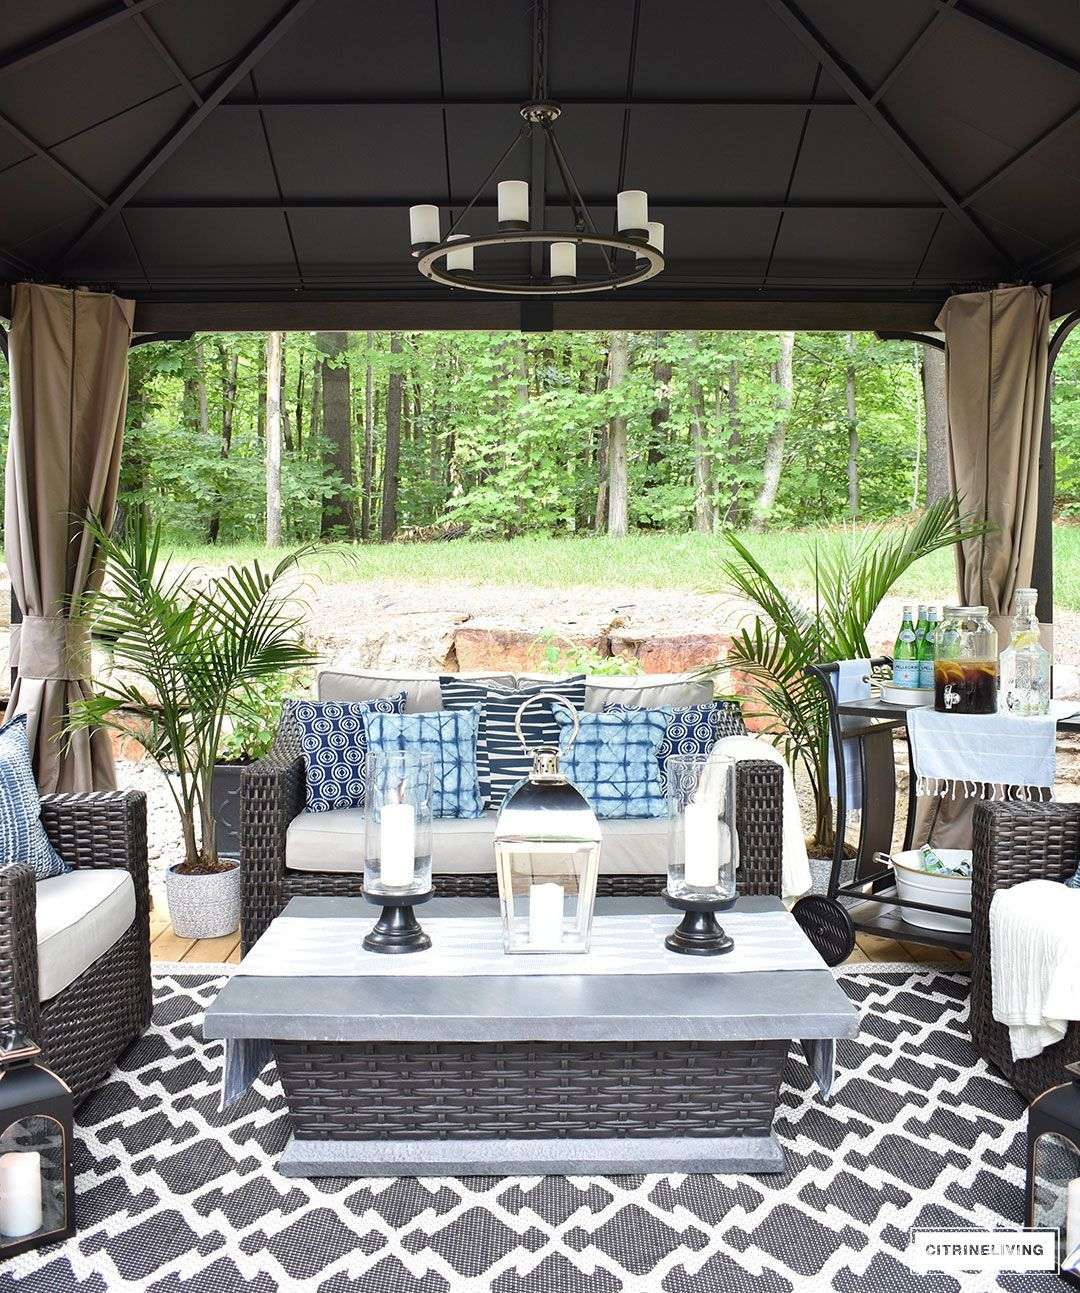 Small Backyard Ideas For Entertaining: OUR NEW BACKYARD PATIO REVEAL